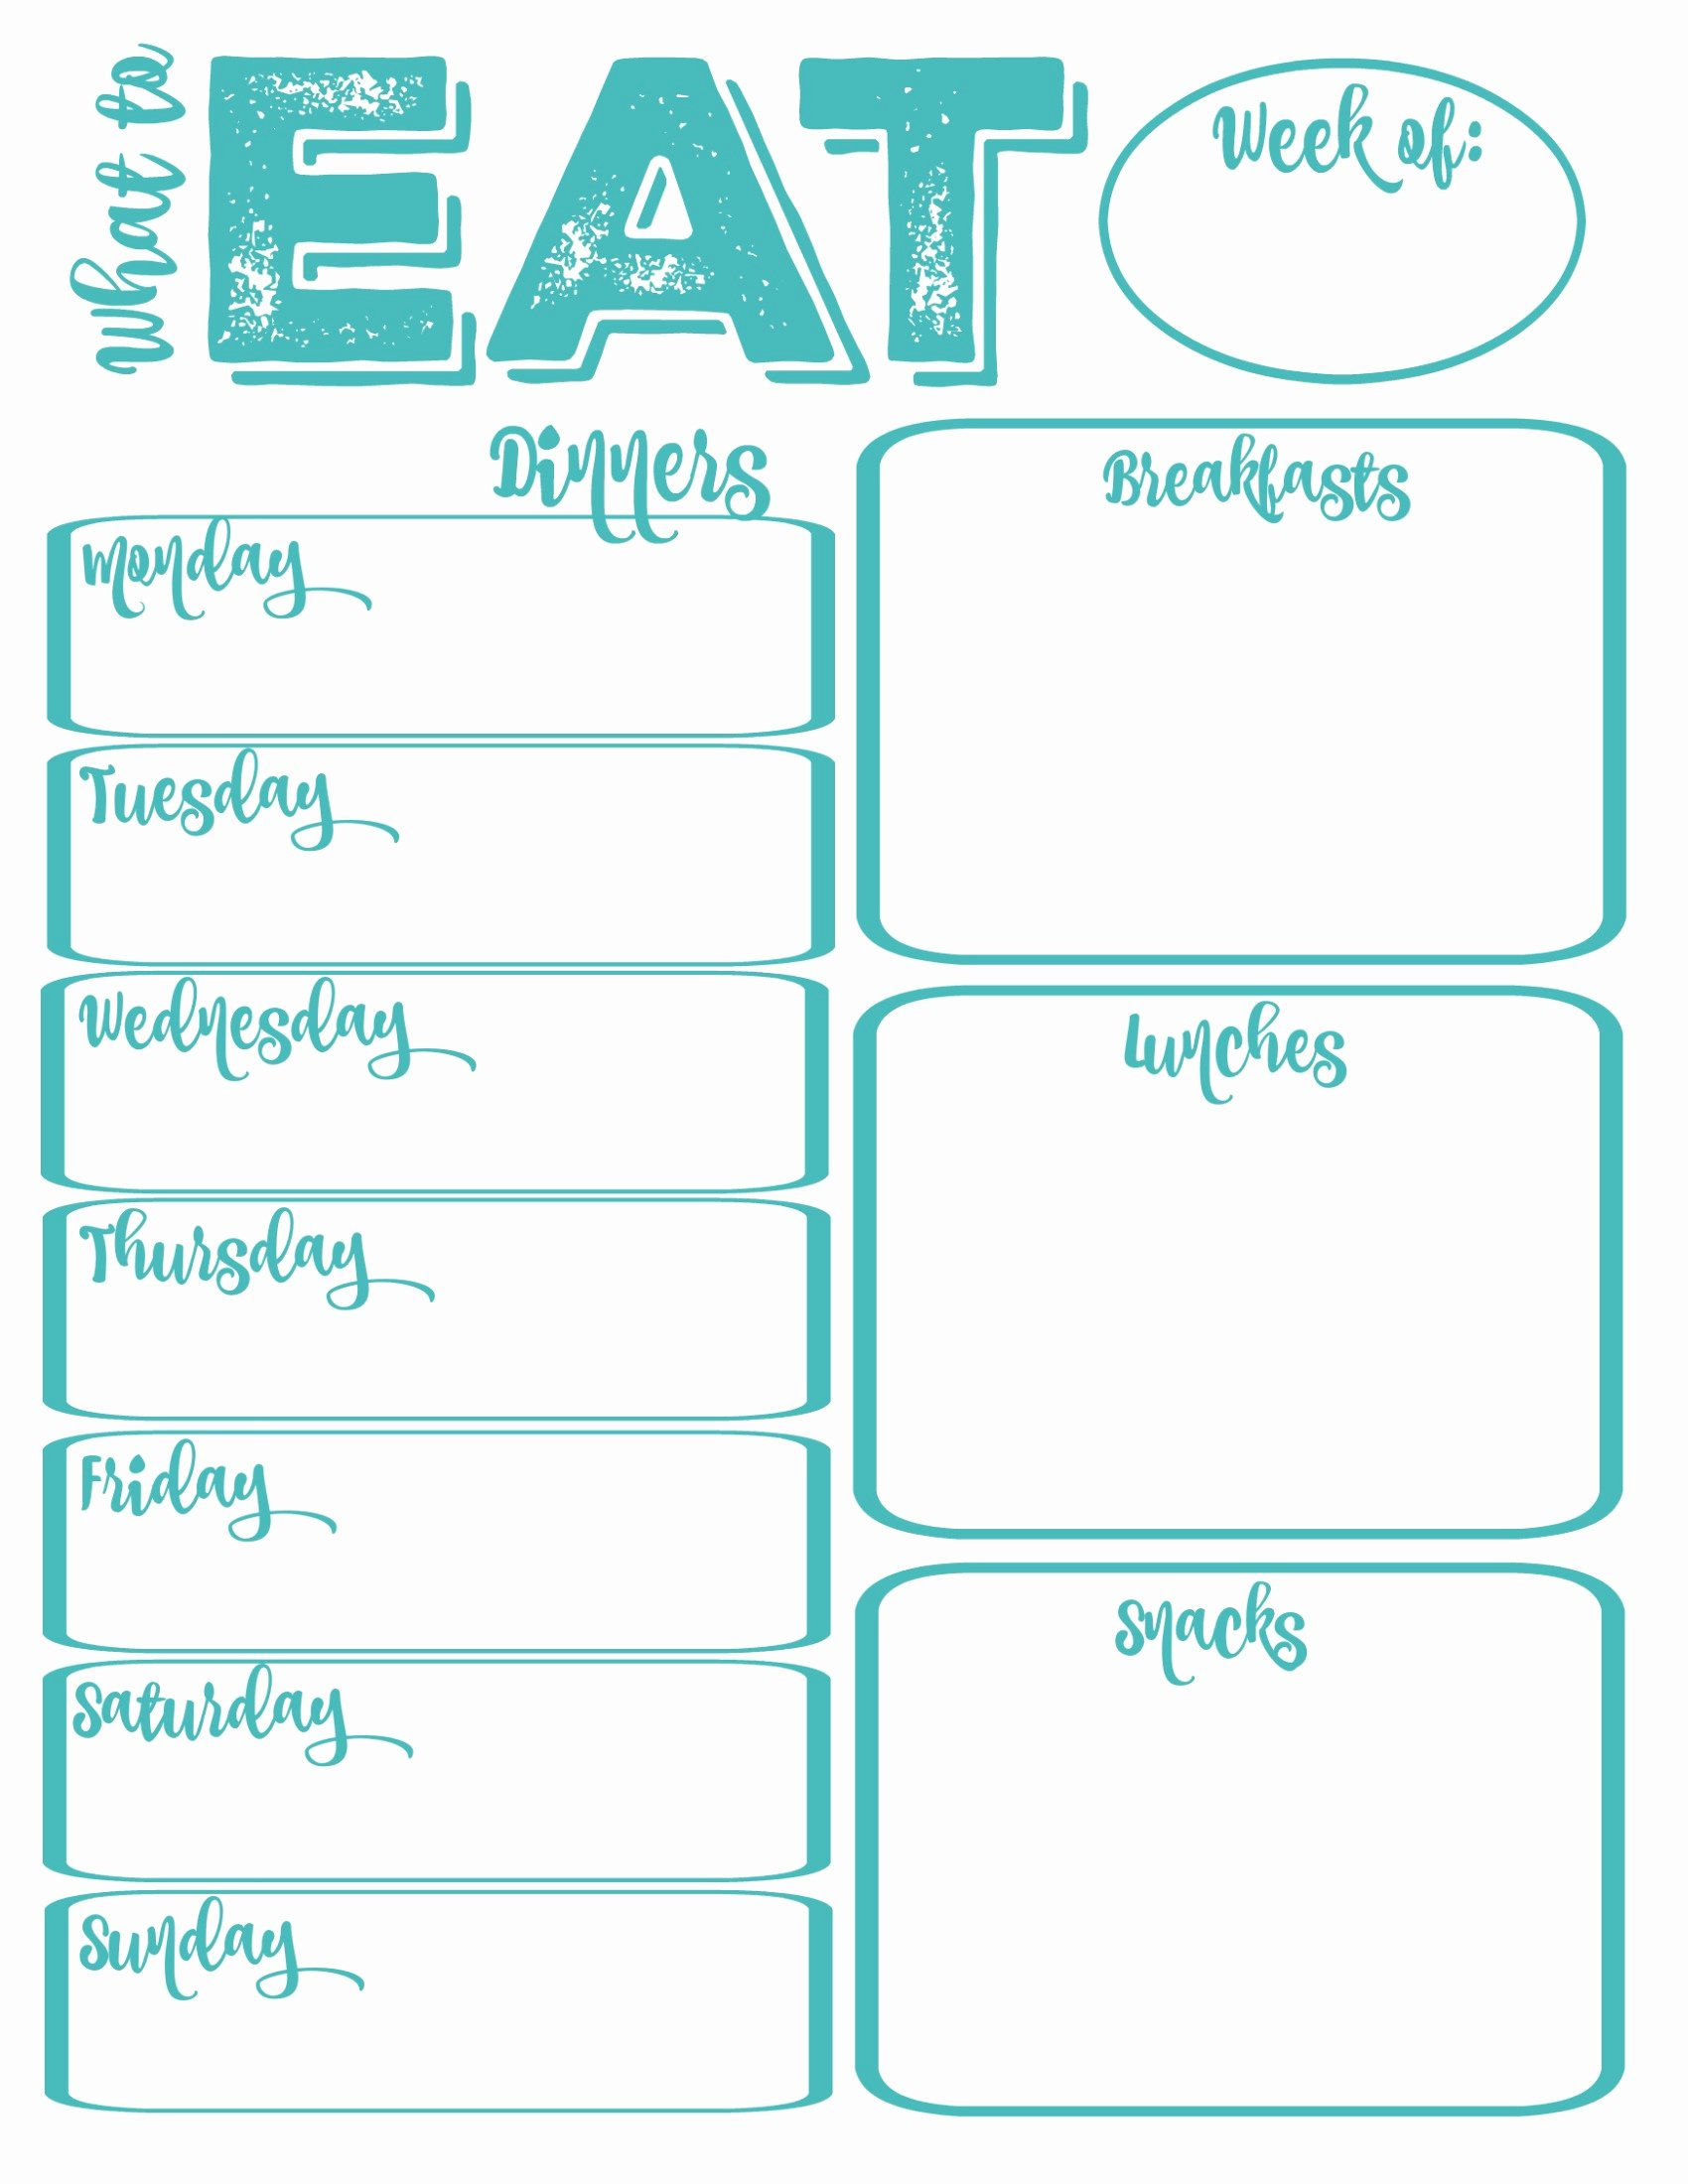 Weekly Dinner Menu Template Unique Pantry Makeover Free Printable Weekly Meal Planner and